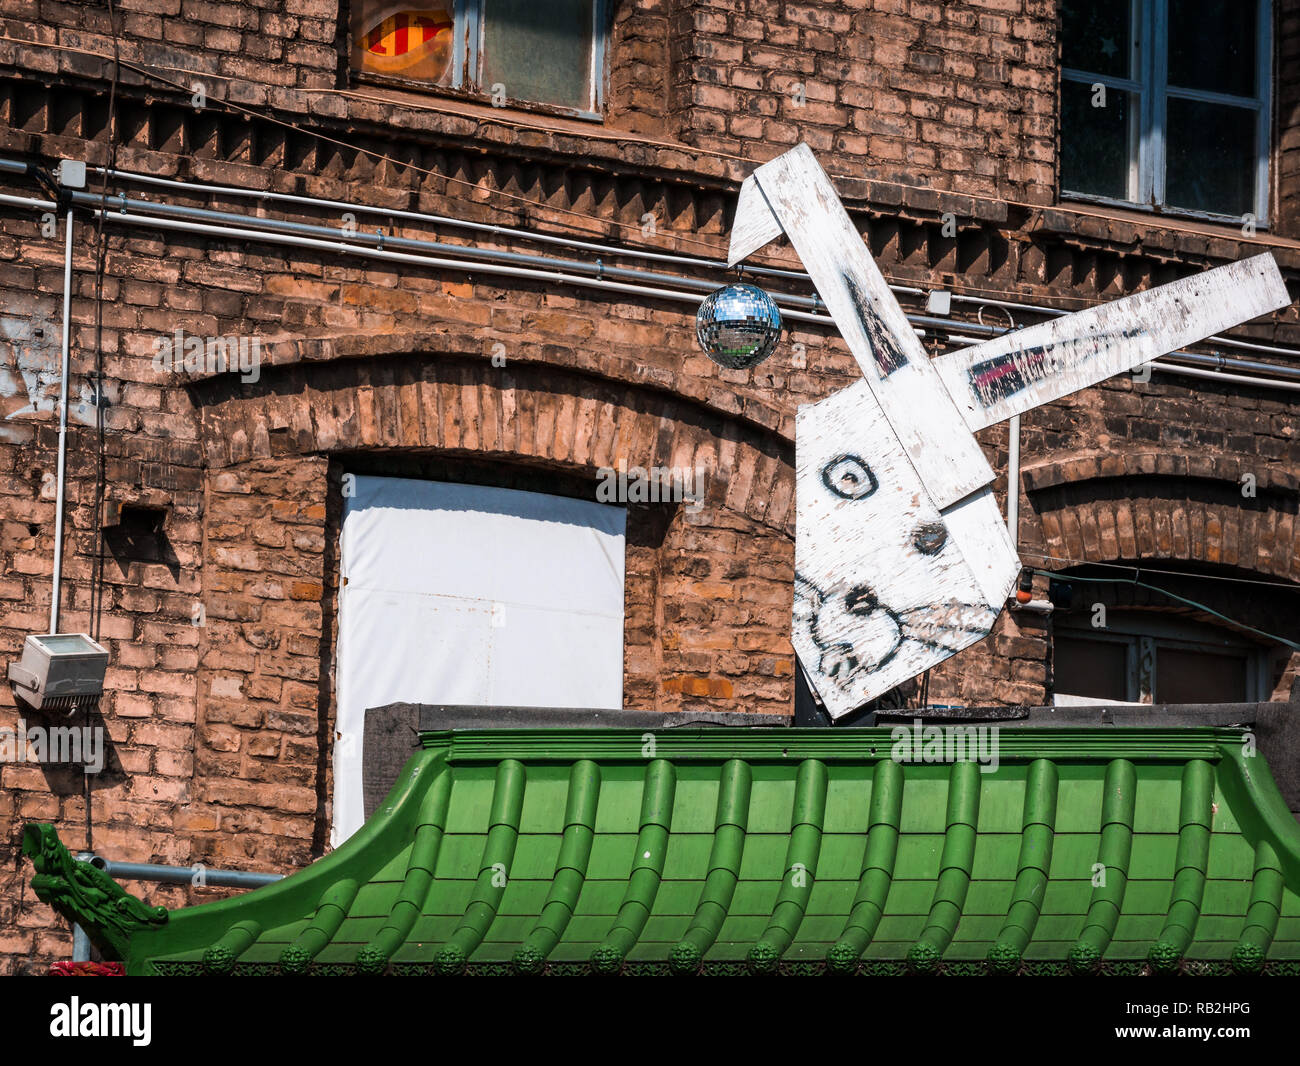 Berlin, Germany - May 21st 2018: Old industrial buildings decorated with street arts, green roof top and funny bunny - Stock Image